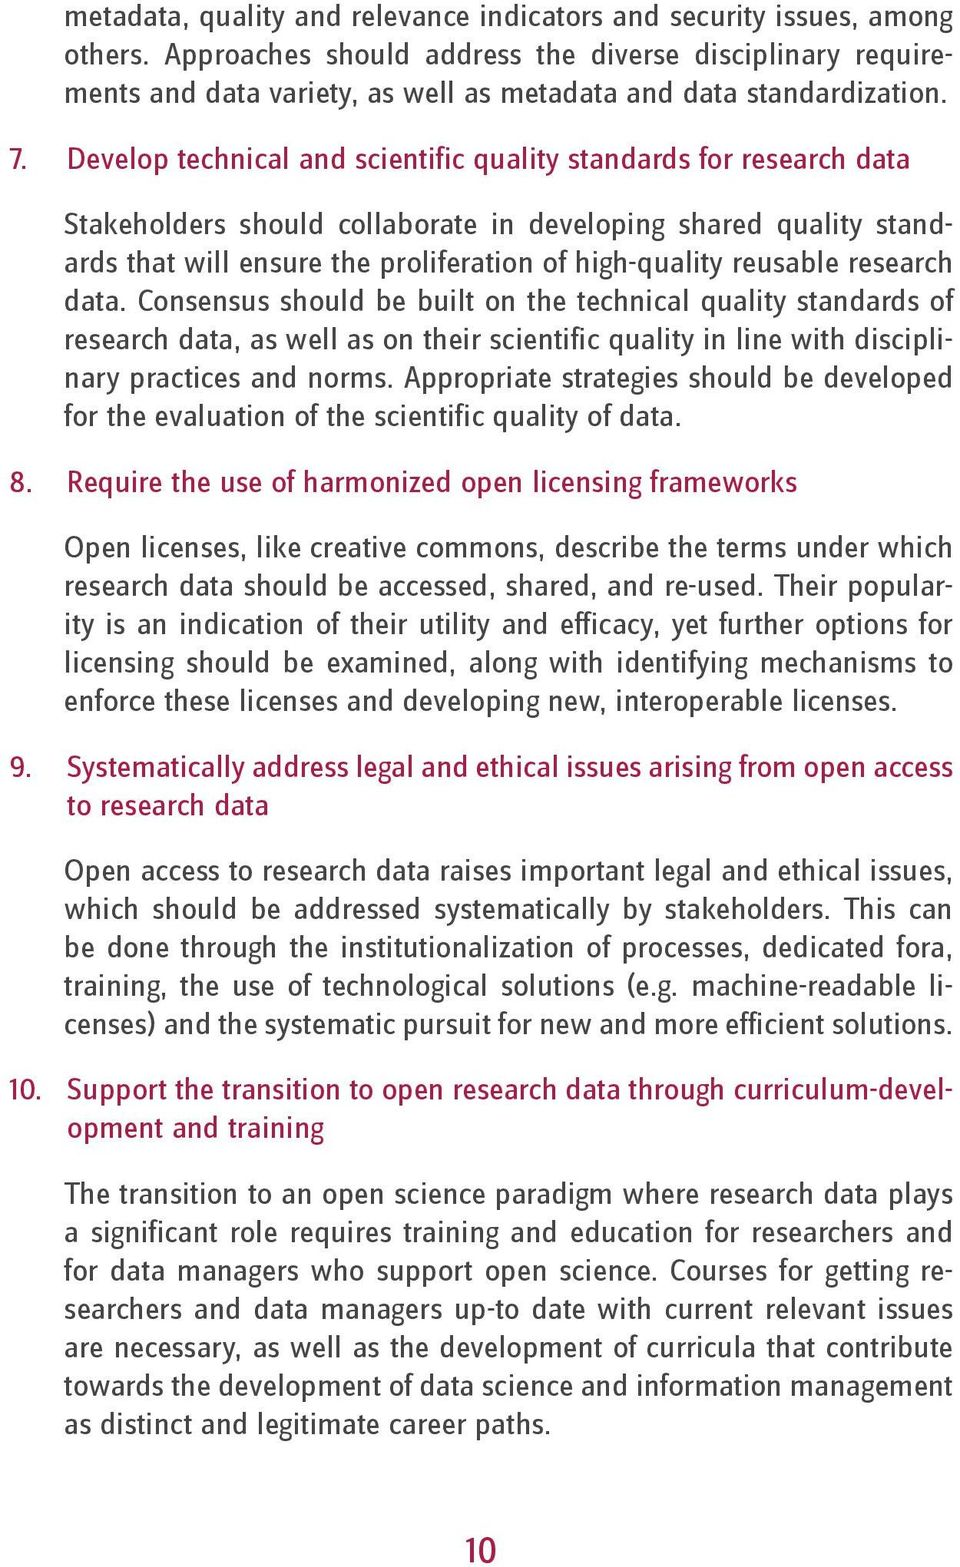 Develop technical and scientific quality standards for research data Stakeholders should collaborate in developing shared quality standards that will ensure the proliferation of high-quality reusable